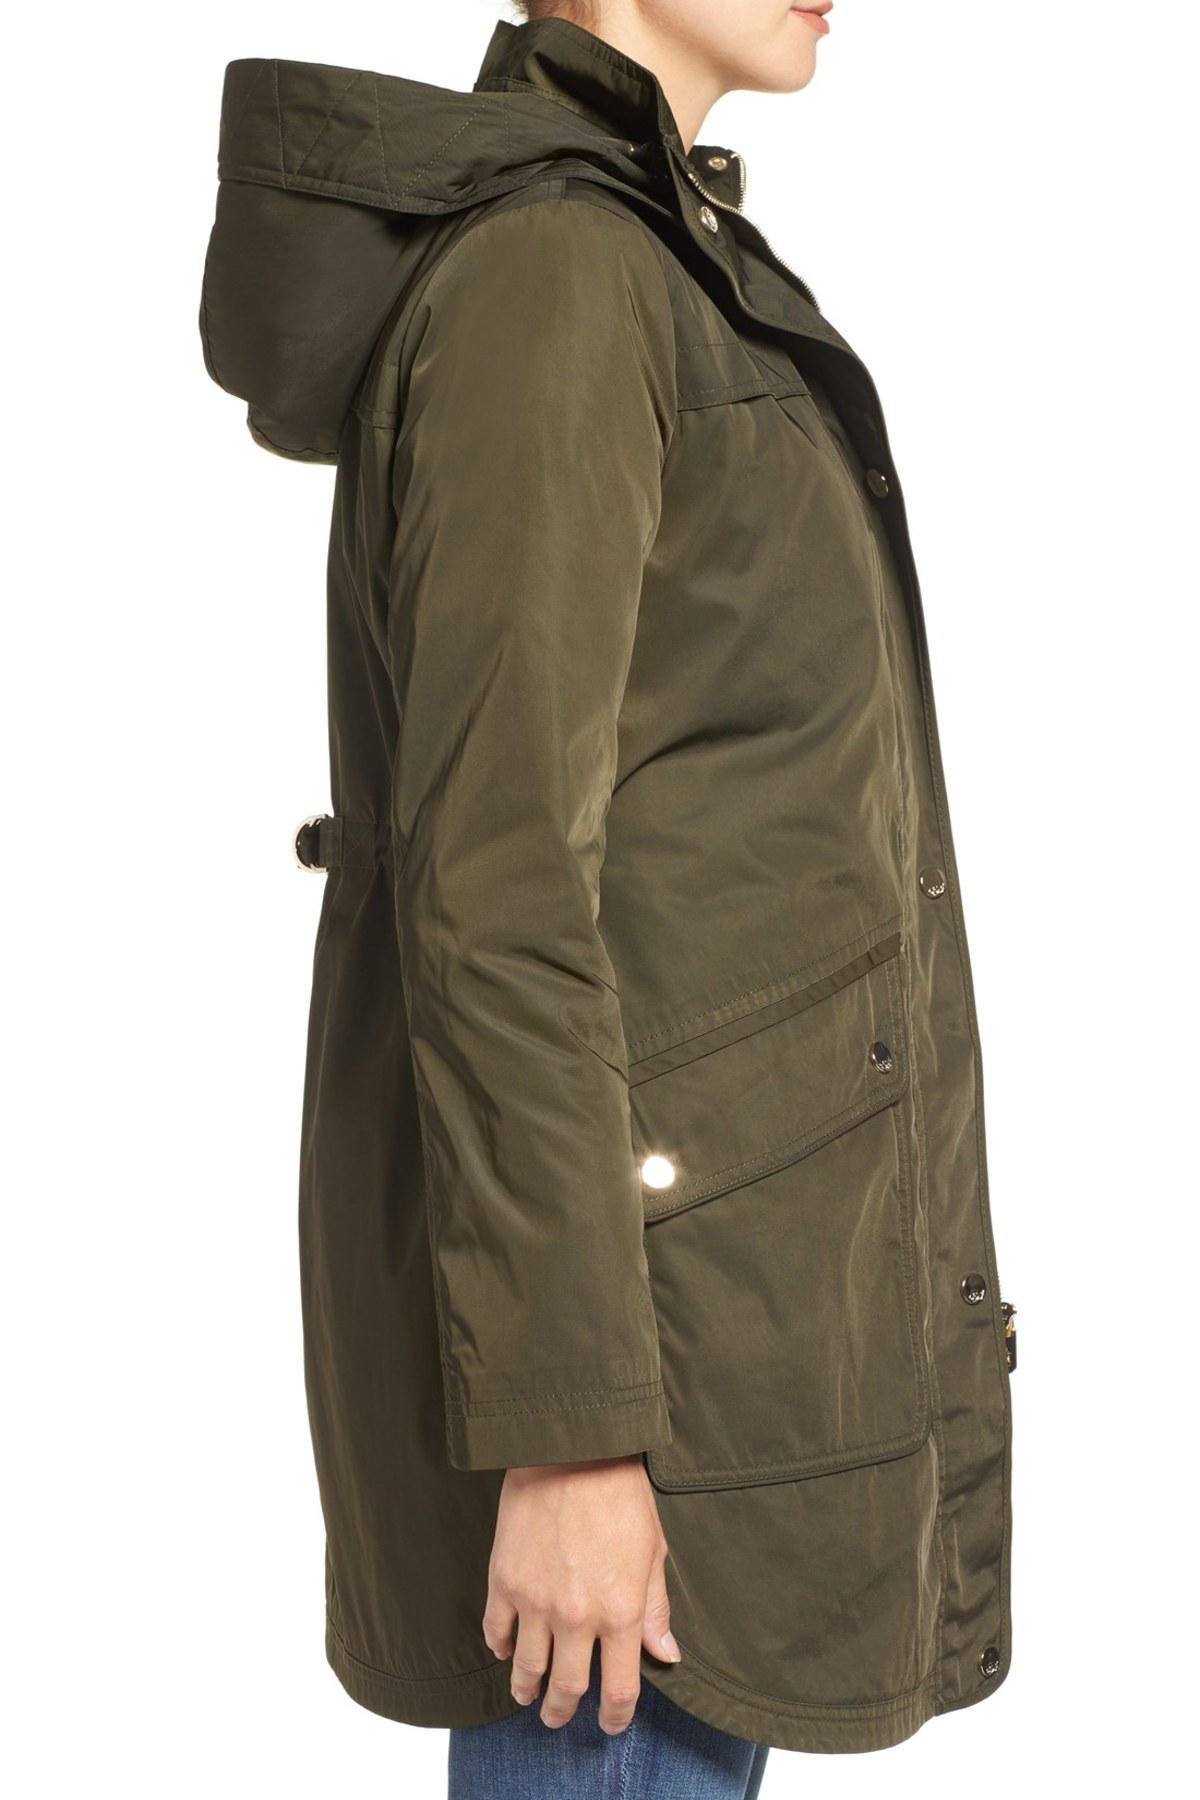 Green Hooded Parka J Eliza Repellent Water E2hid9 9EDH2I